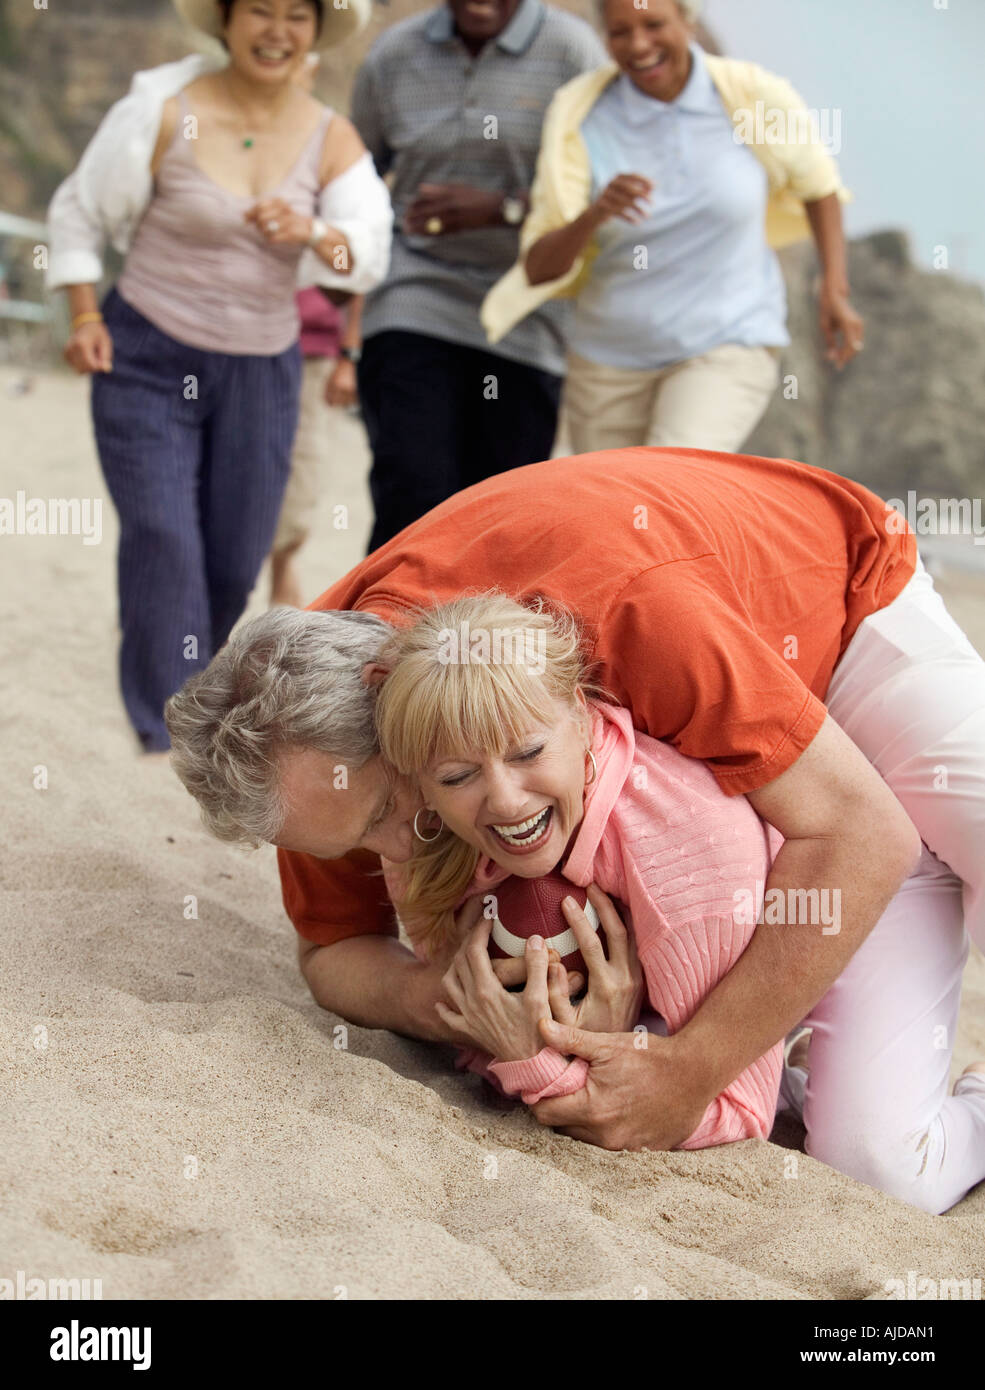 Man tackling woman with football on beach - Stock Image